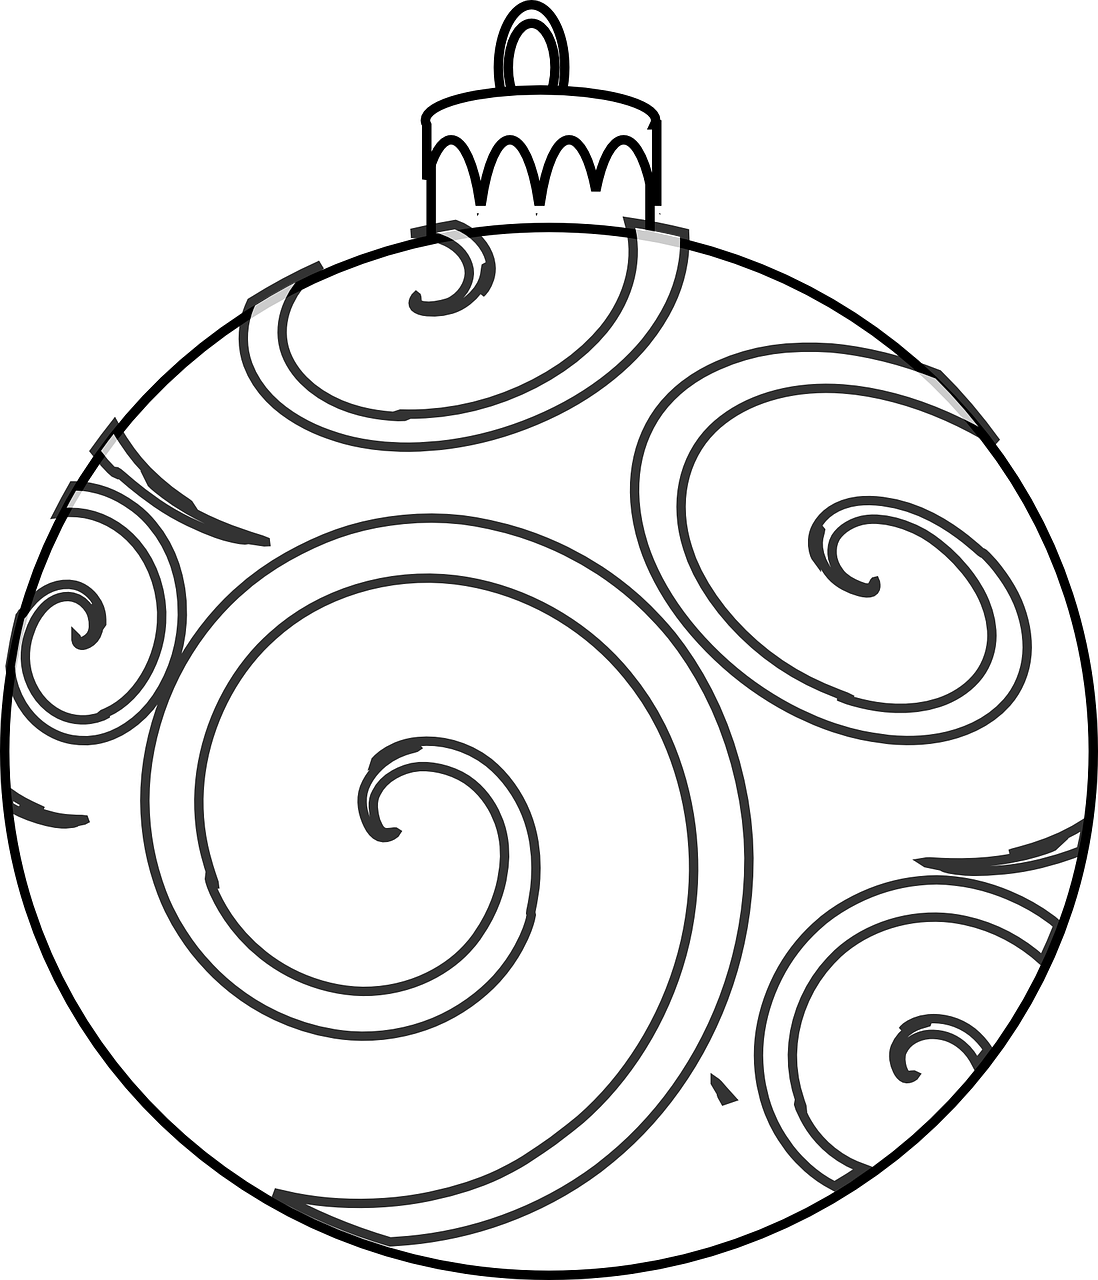 Christmas Ornament Coloring Sheet With Vacation